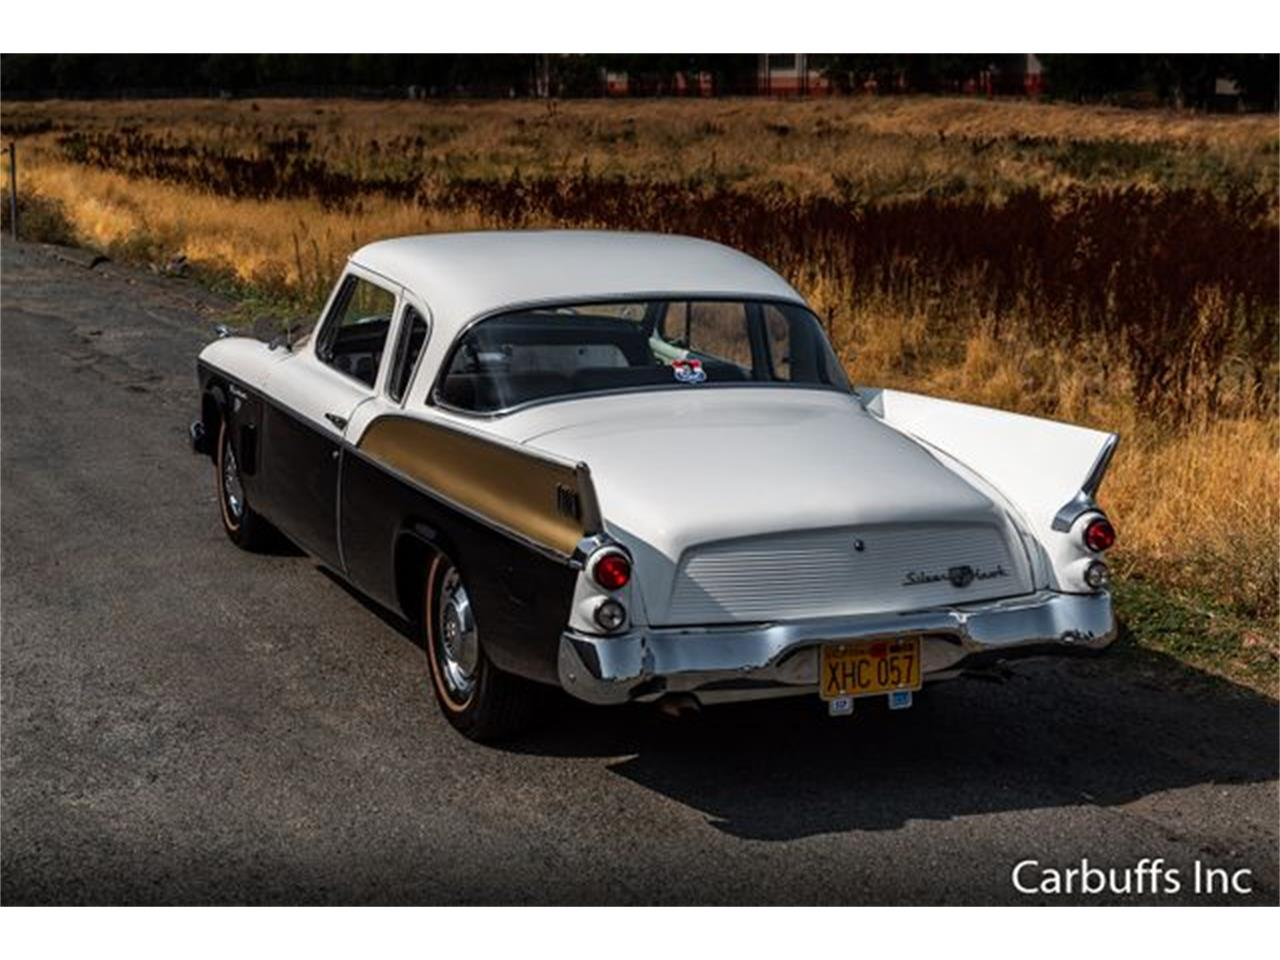 Large Picture of '57 Studebaker Silver Hawk located in Concord California - $11,950.00 - PGPN